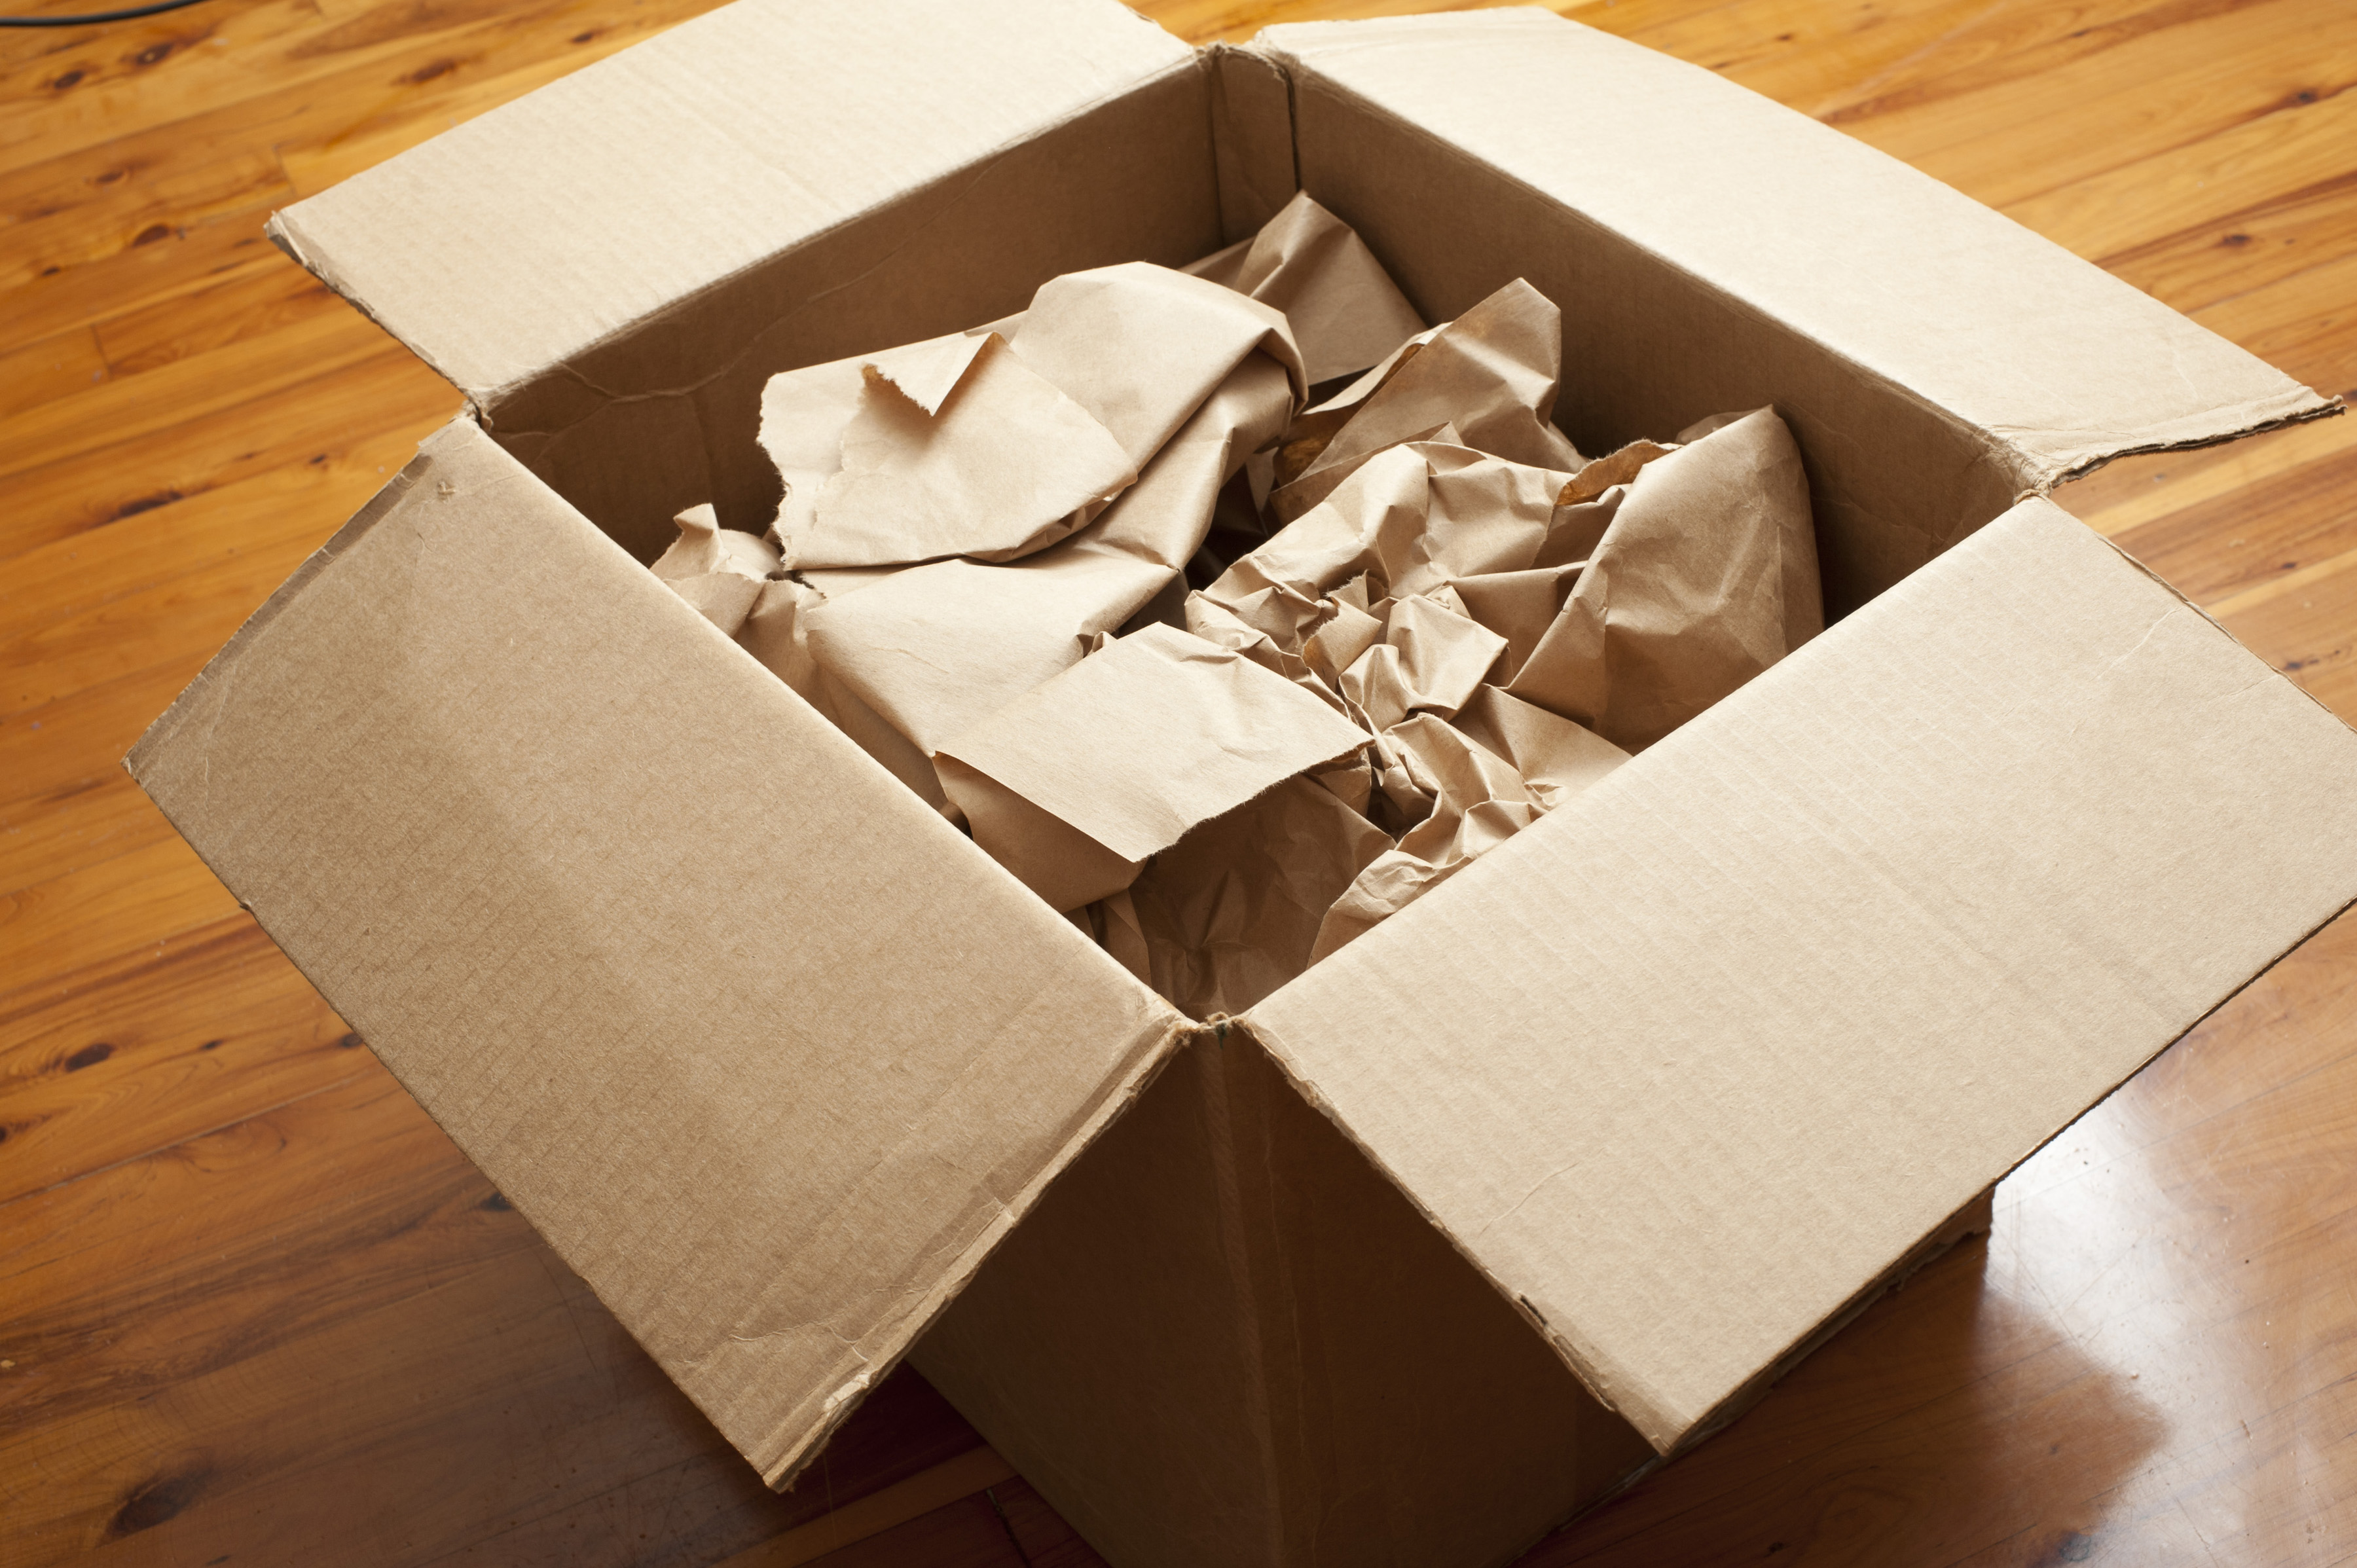 Open brown cardboard box or carton with crumpled brown paper for packaging inside on a wooden floor